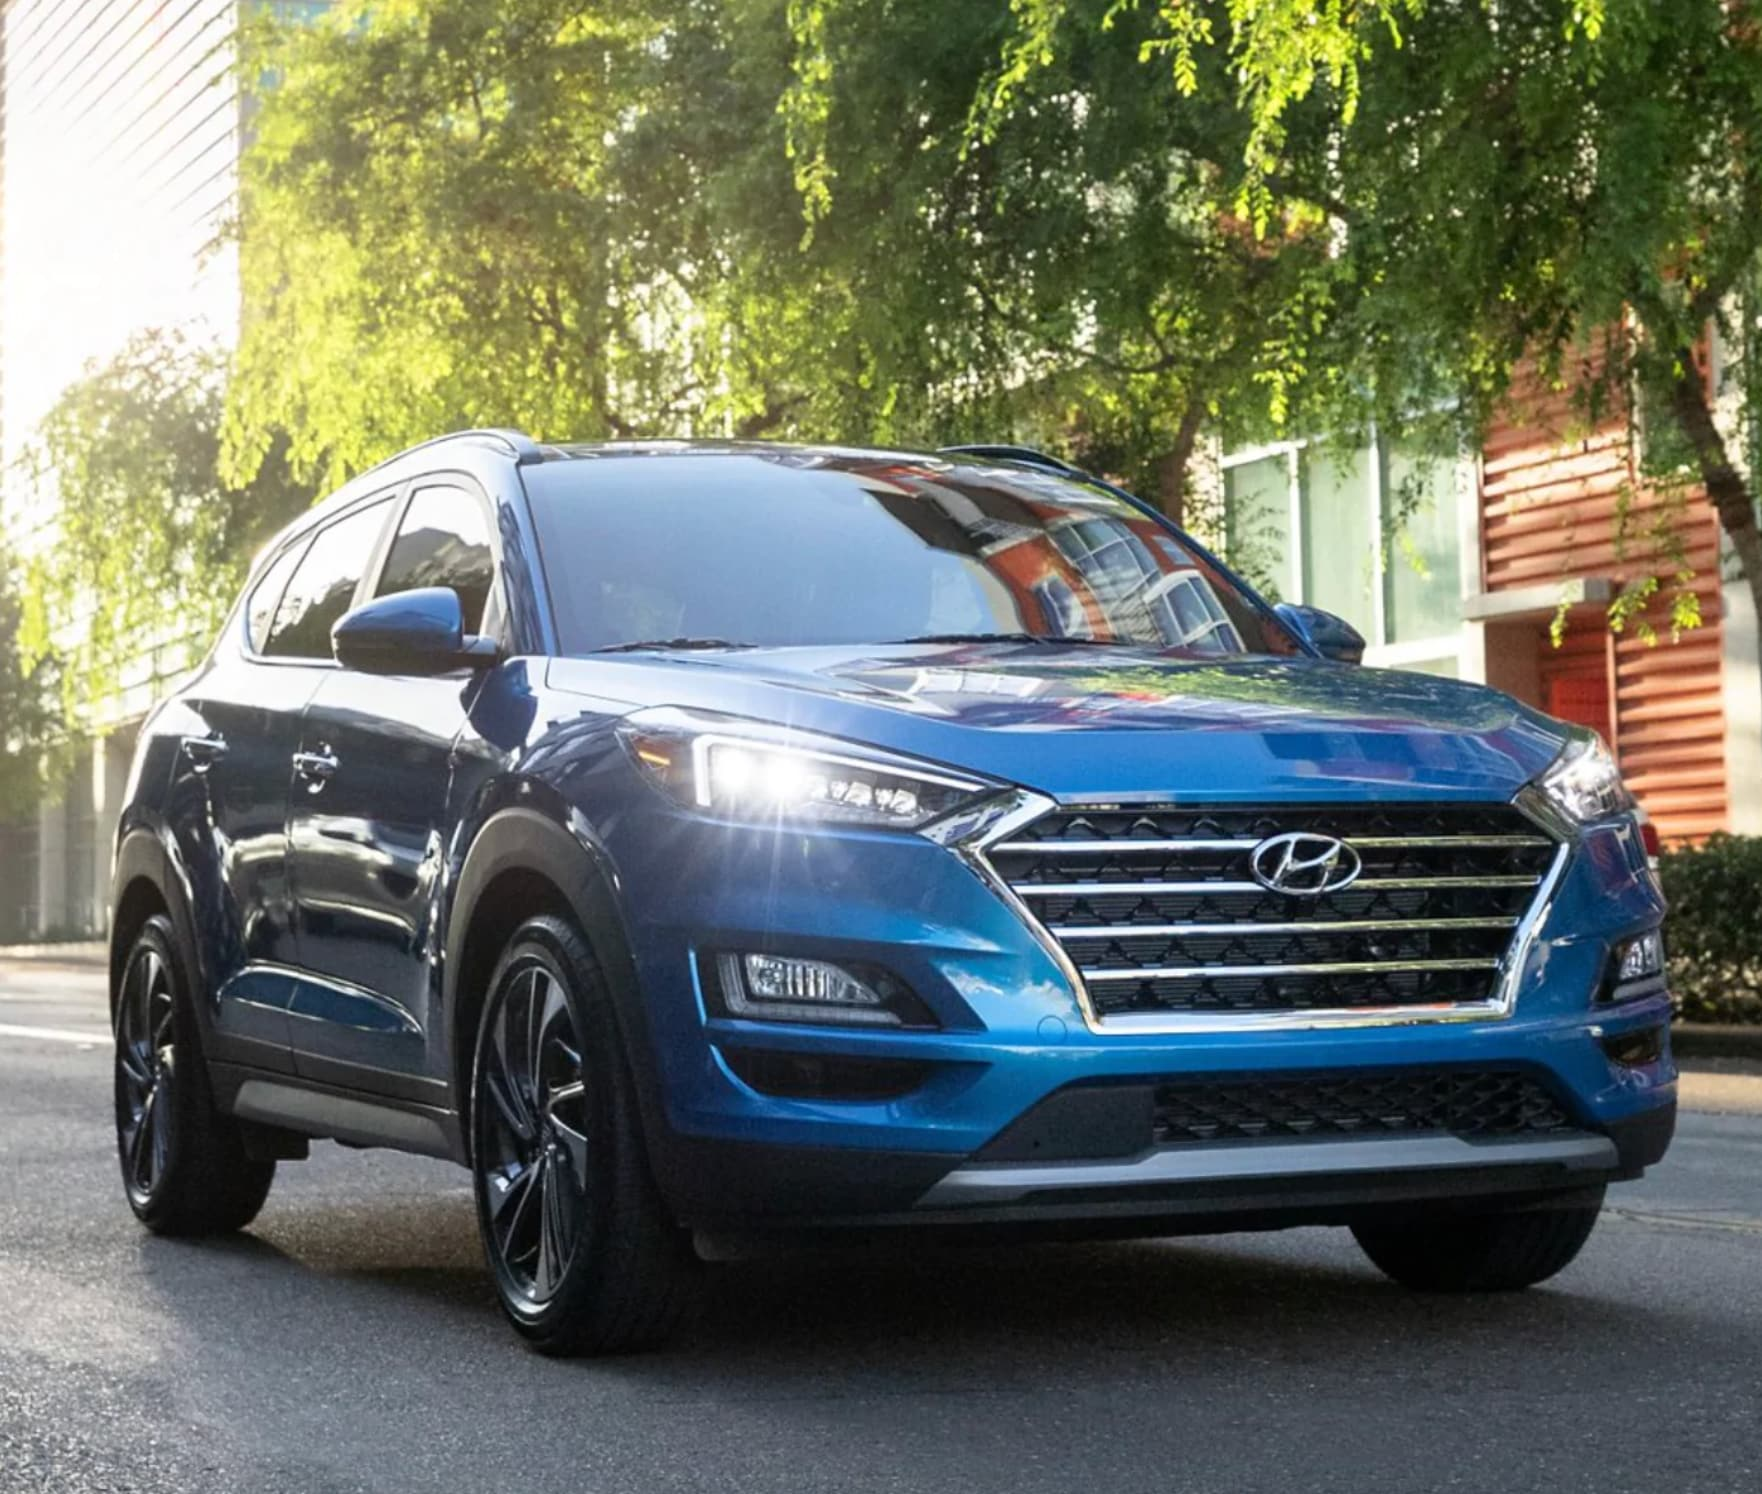 New 2021 Hyundai Tucson in Hagerstown, MD